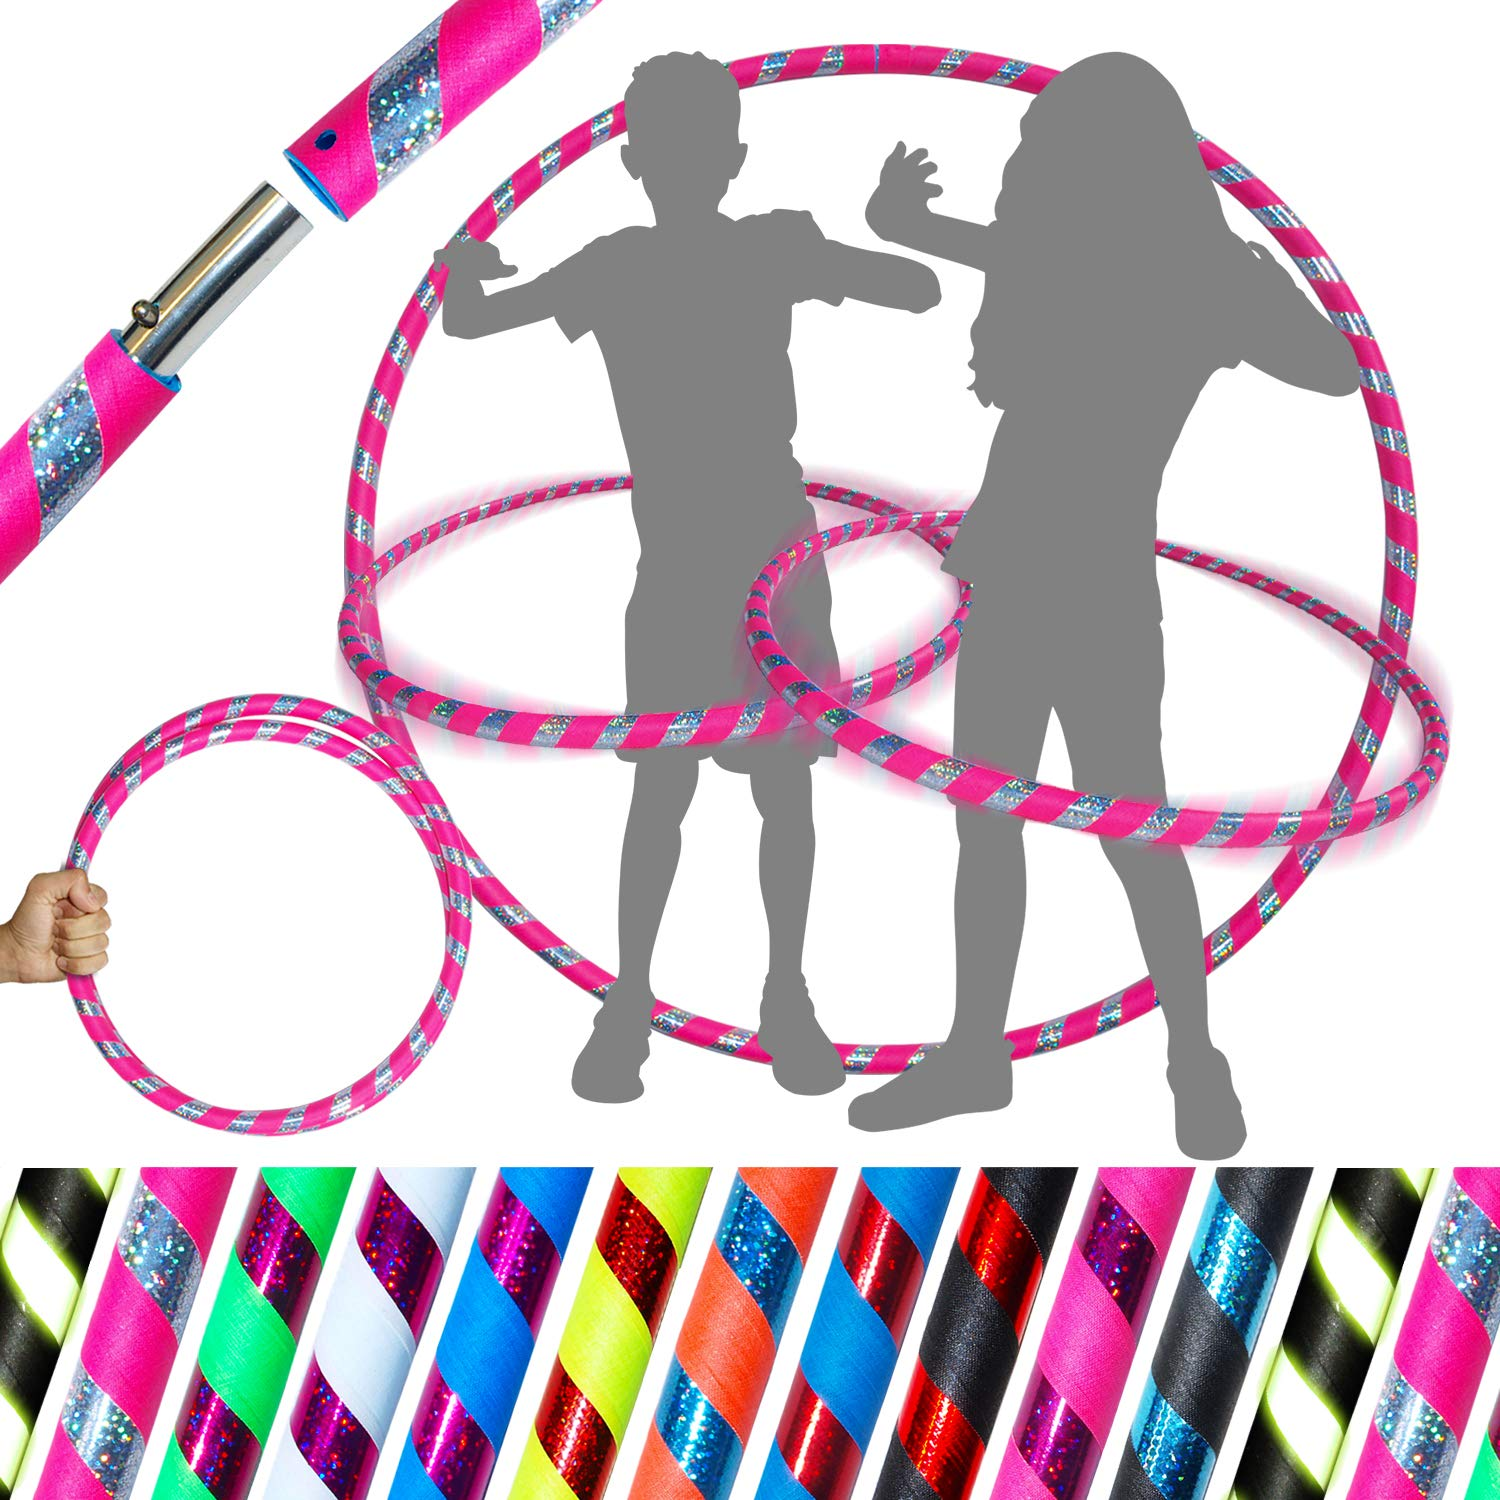 KID's HULA HOOPS - Quality Weighted Children's Hula Hoops! Great For Exercise, Dance, Fitness & FUN! NO Instructions needed! Same Day Dispatch! (UV Pink / Silver Glitter) by Flames N Games Kids Hoops